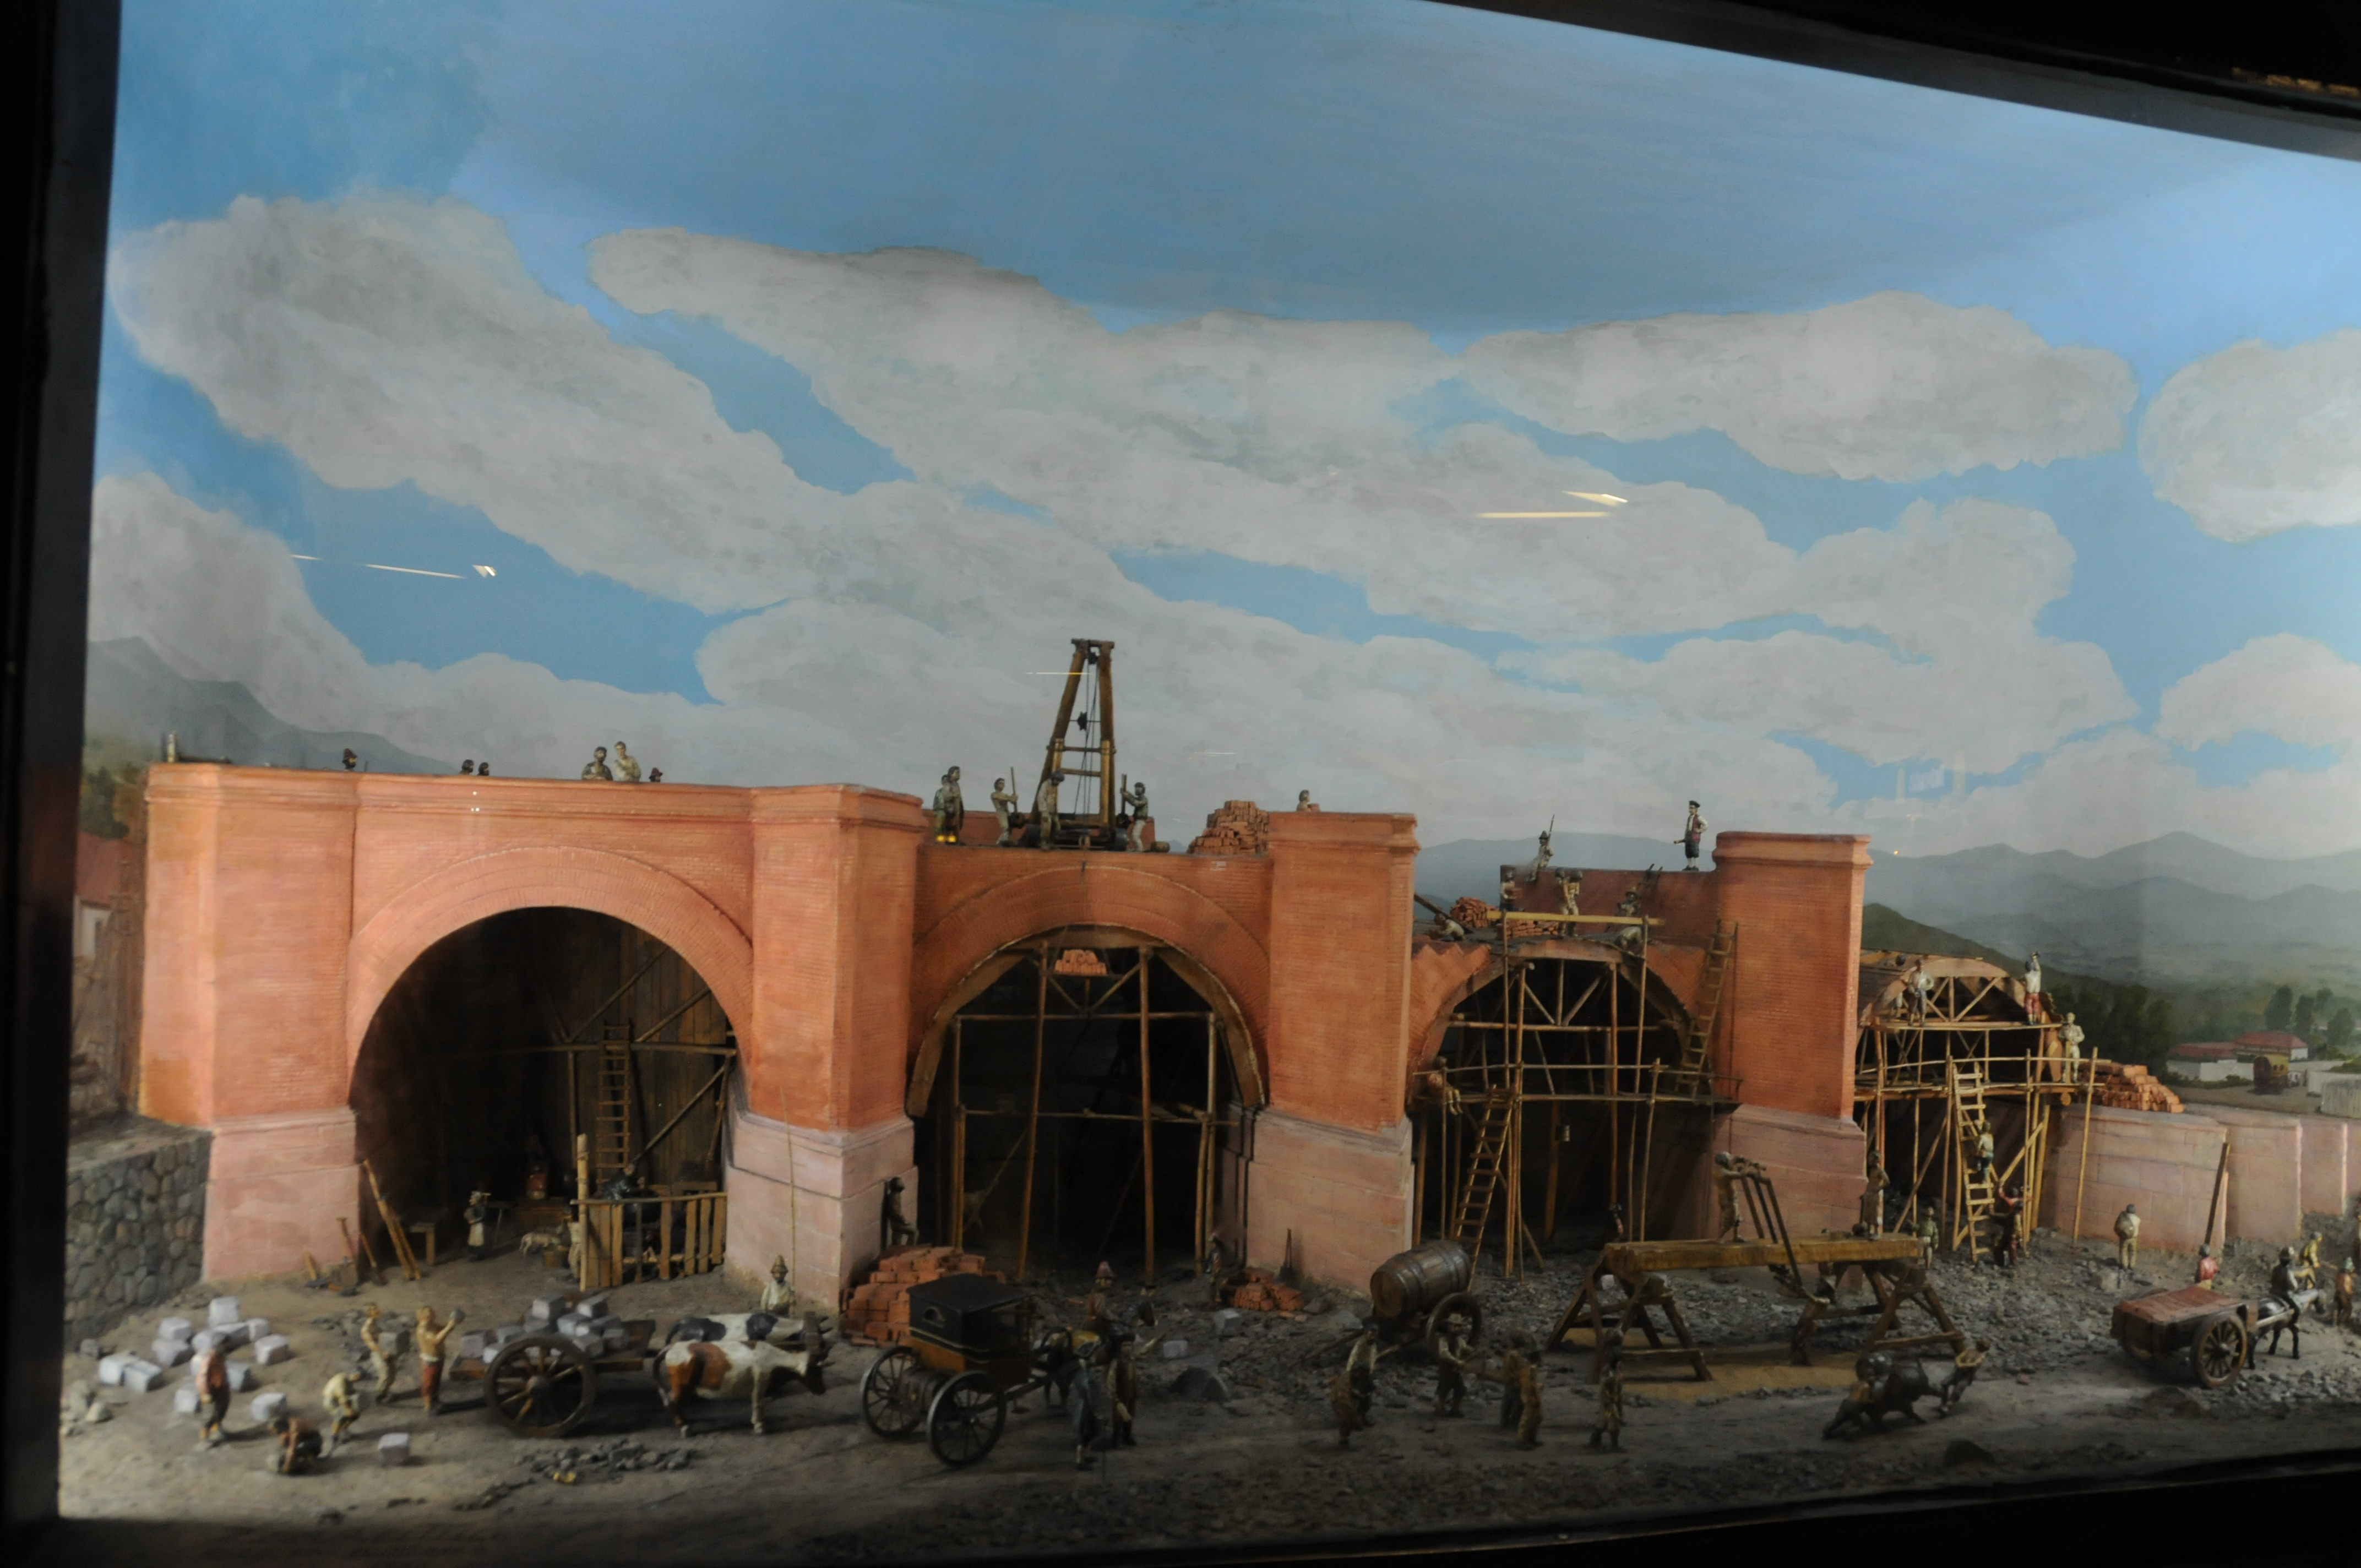 What's pretty in the Santiago's metro. Dioramas, of course!